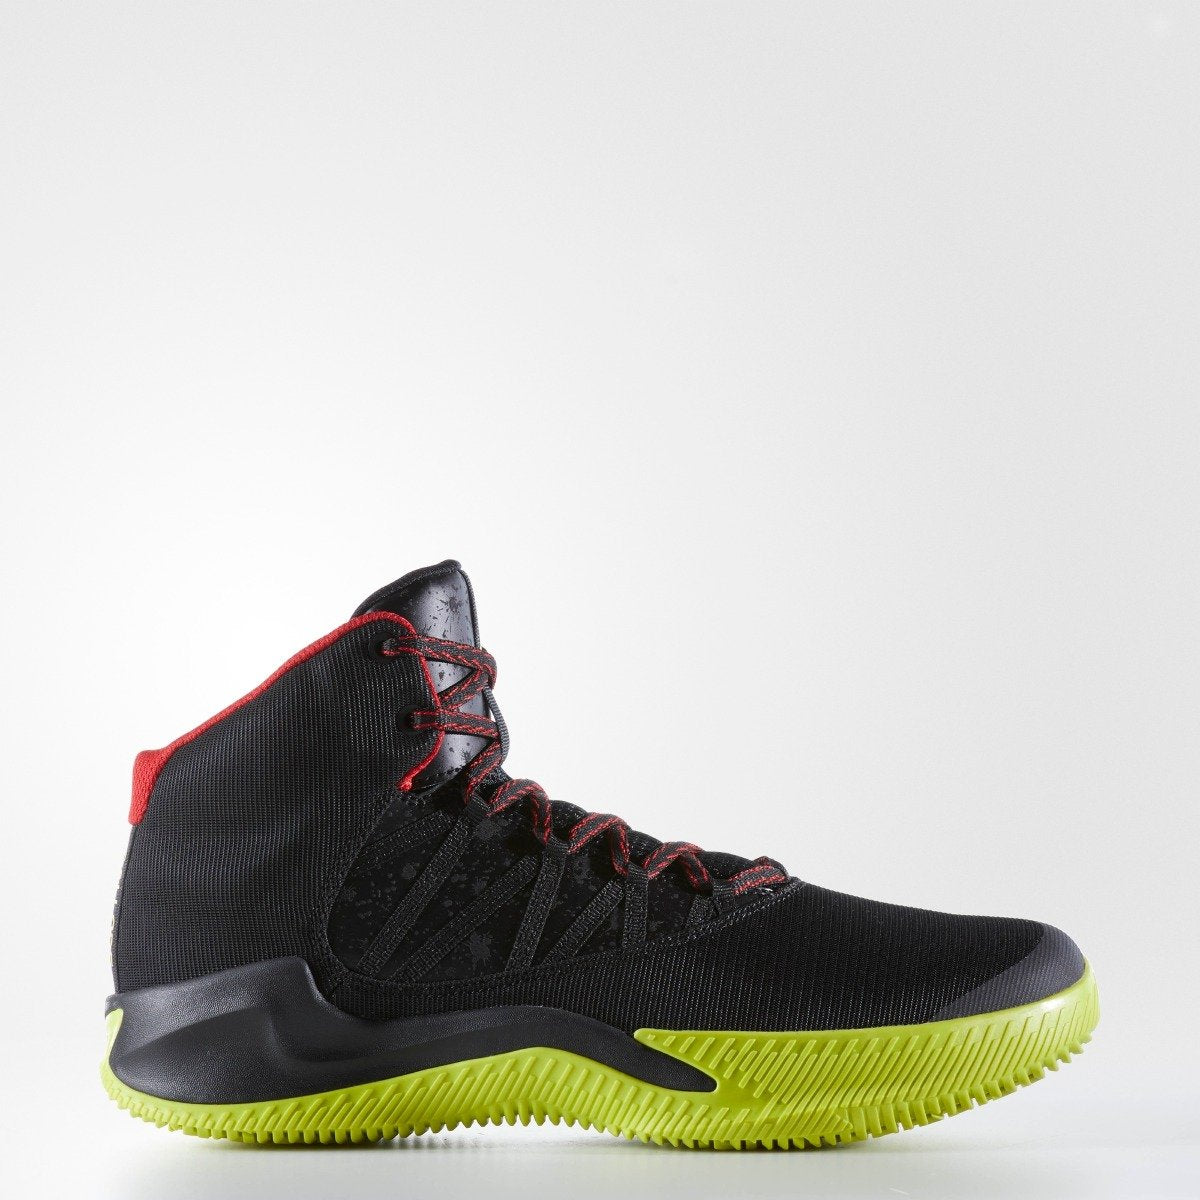 96b690da09b Men s adidas Originals Ball 365 Infiltrate Basketball Shoes Black with  Yellow and Red